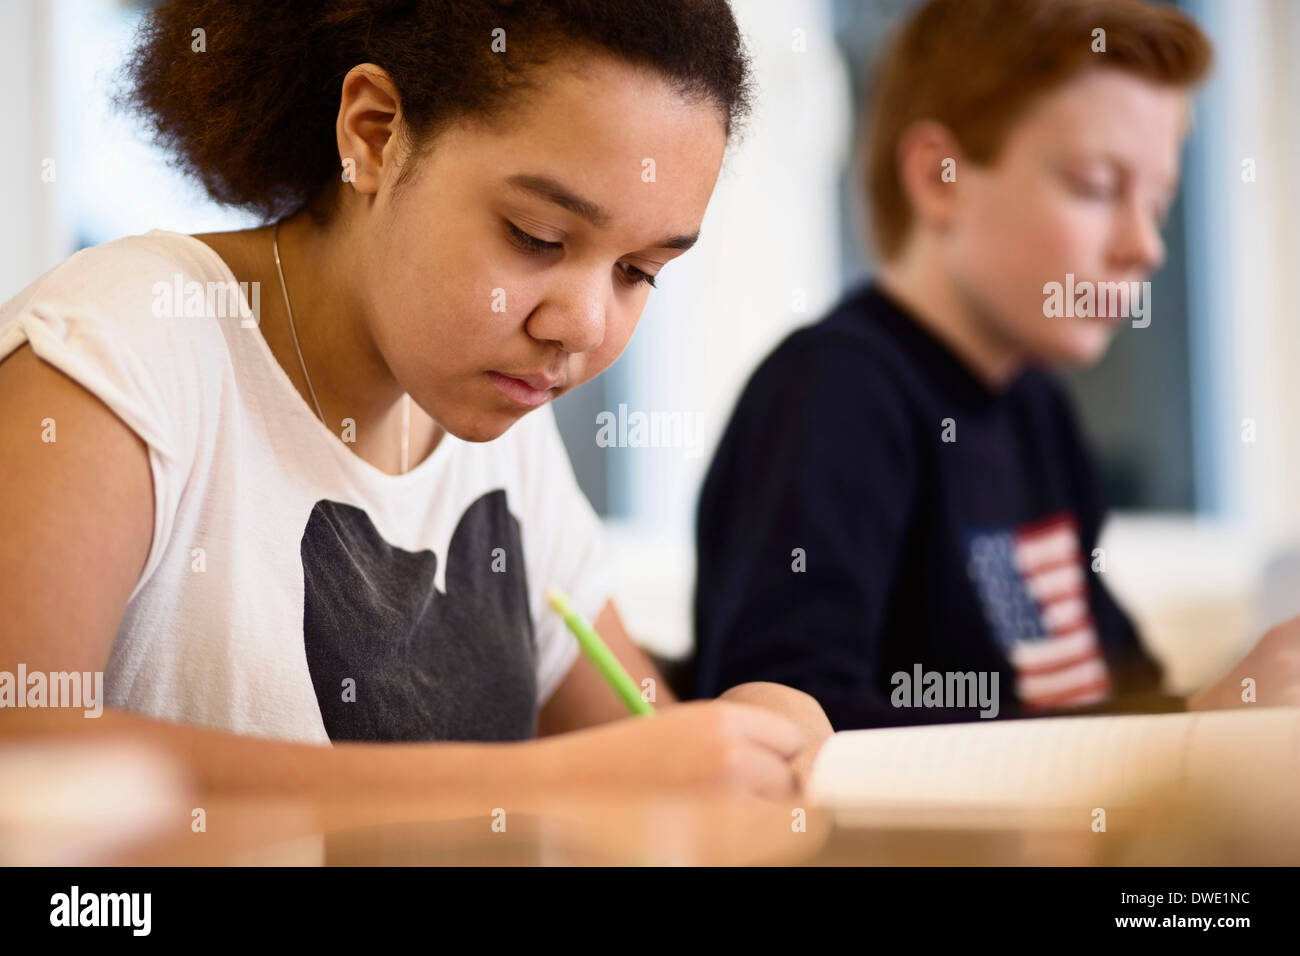 High school girl studying in class - Stock Image